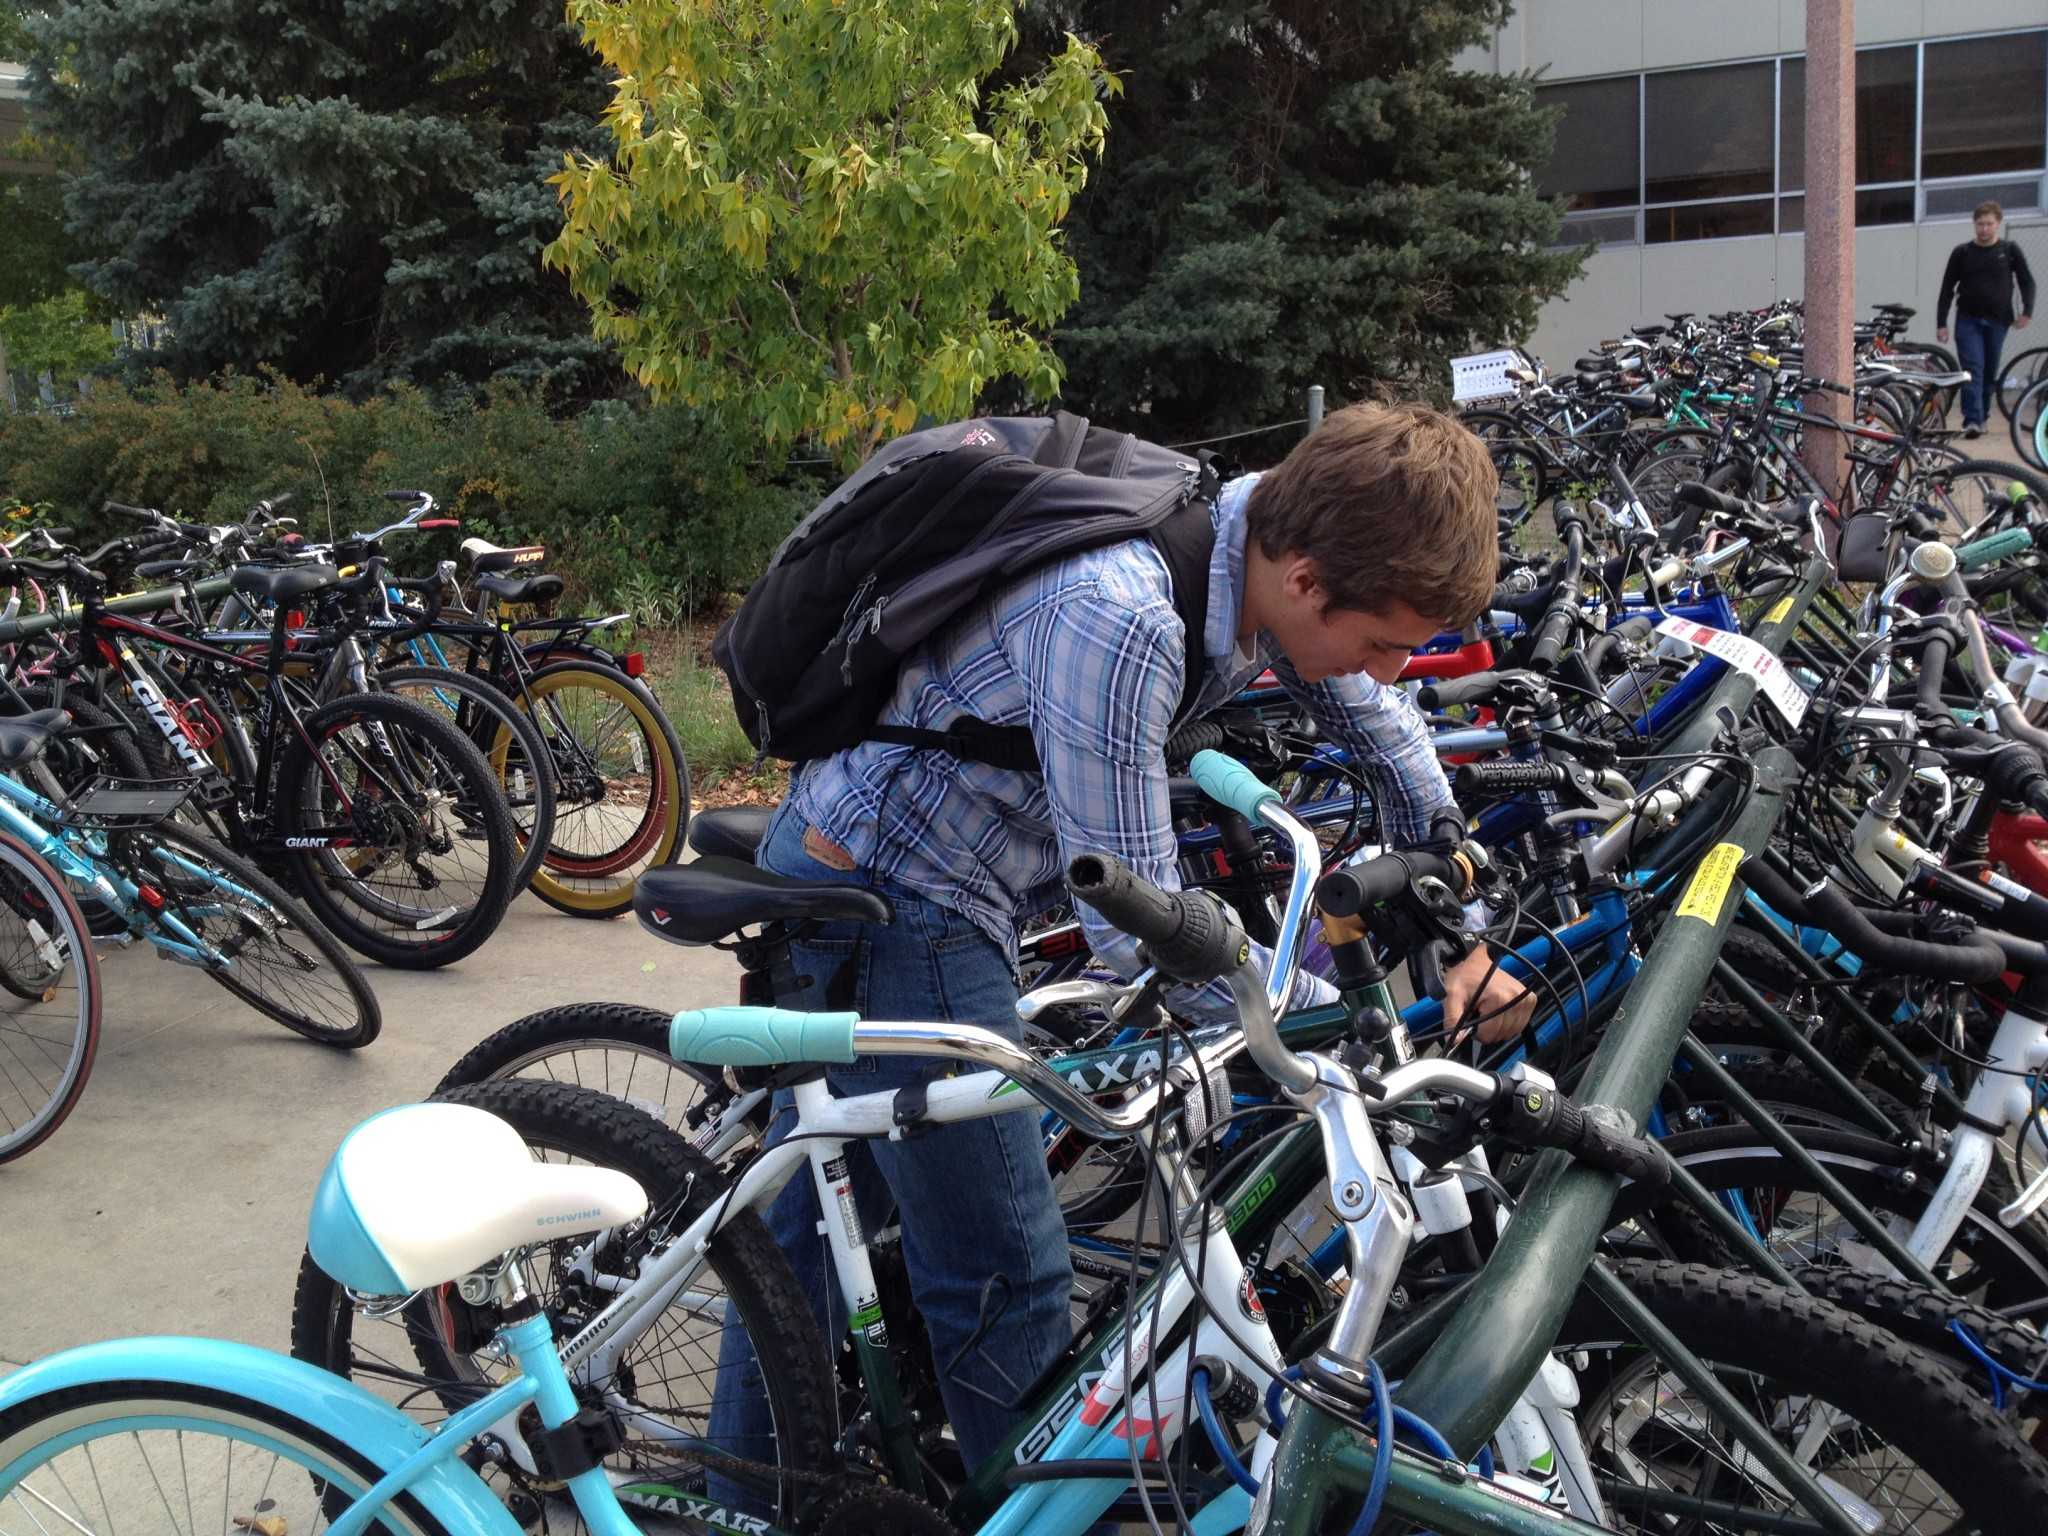 Bike theft rising at CSU may be due in part to negligence